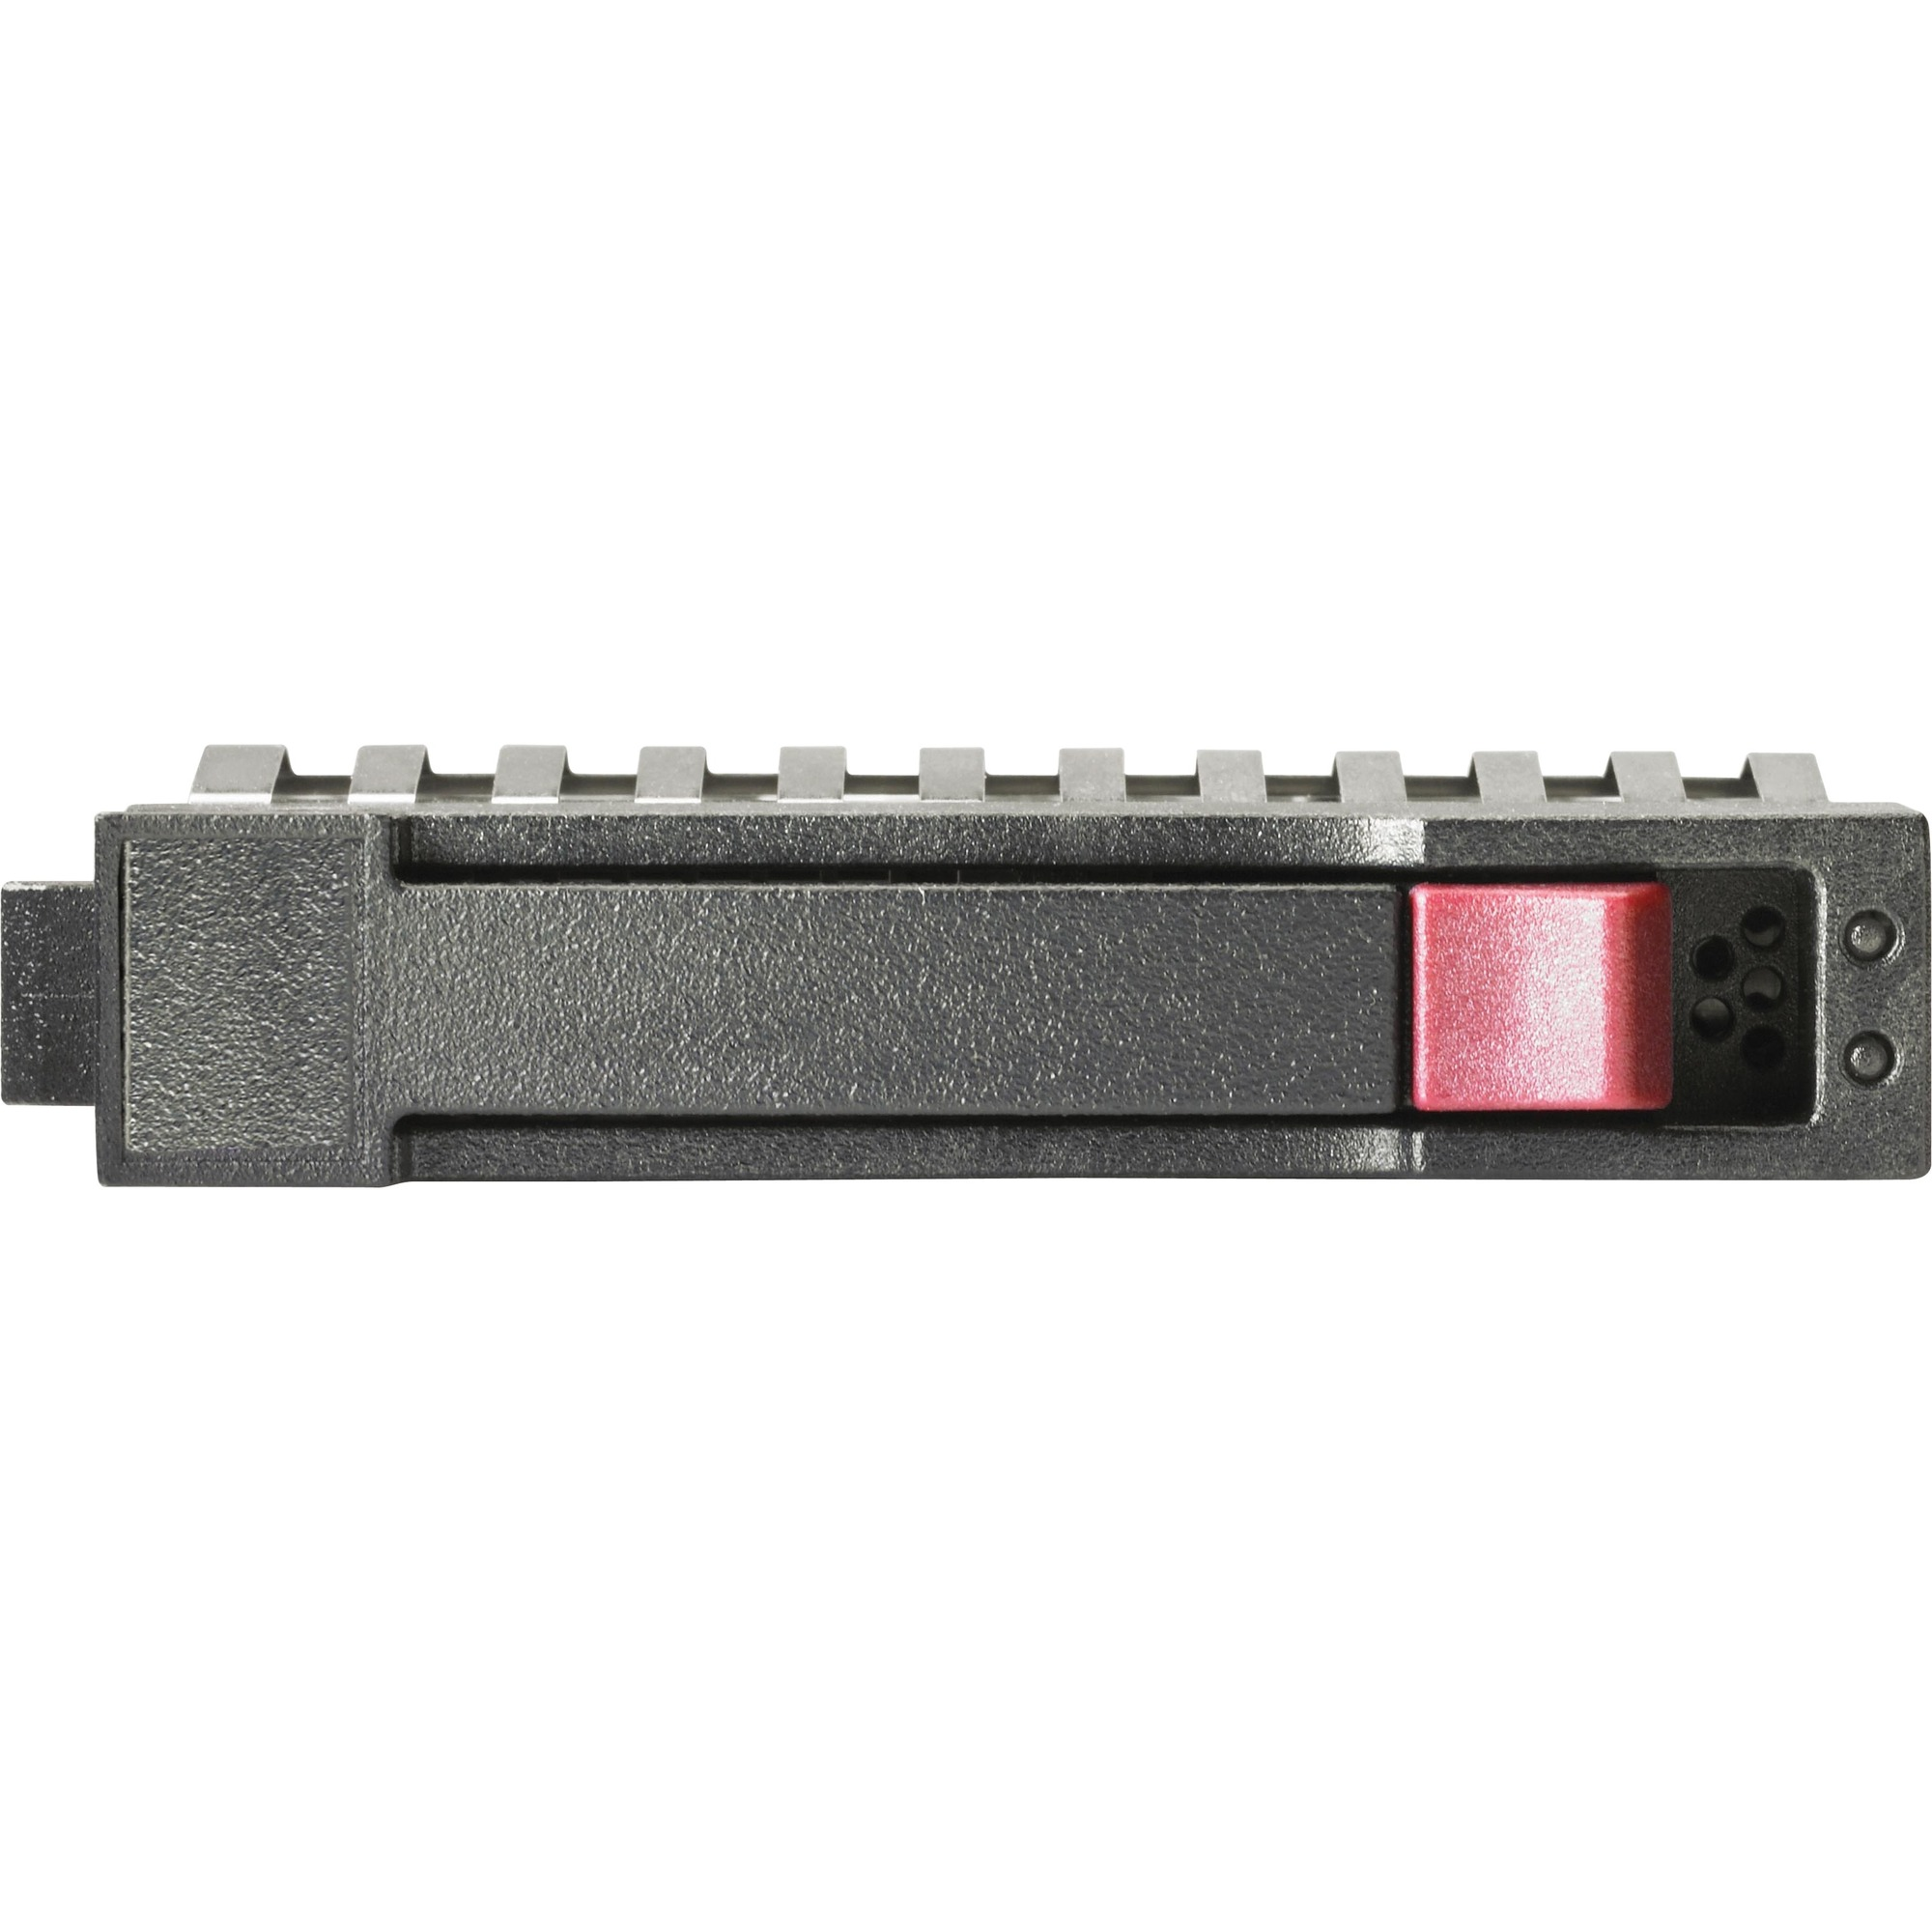 HP 200 GB 2.5inch Internal Solid State Drive - SAS